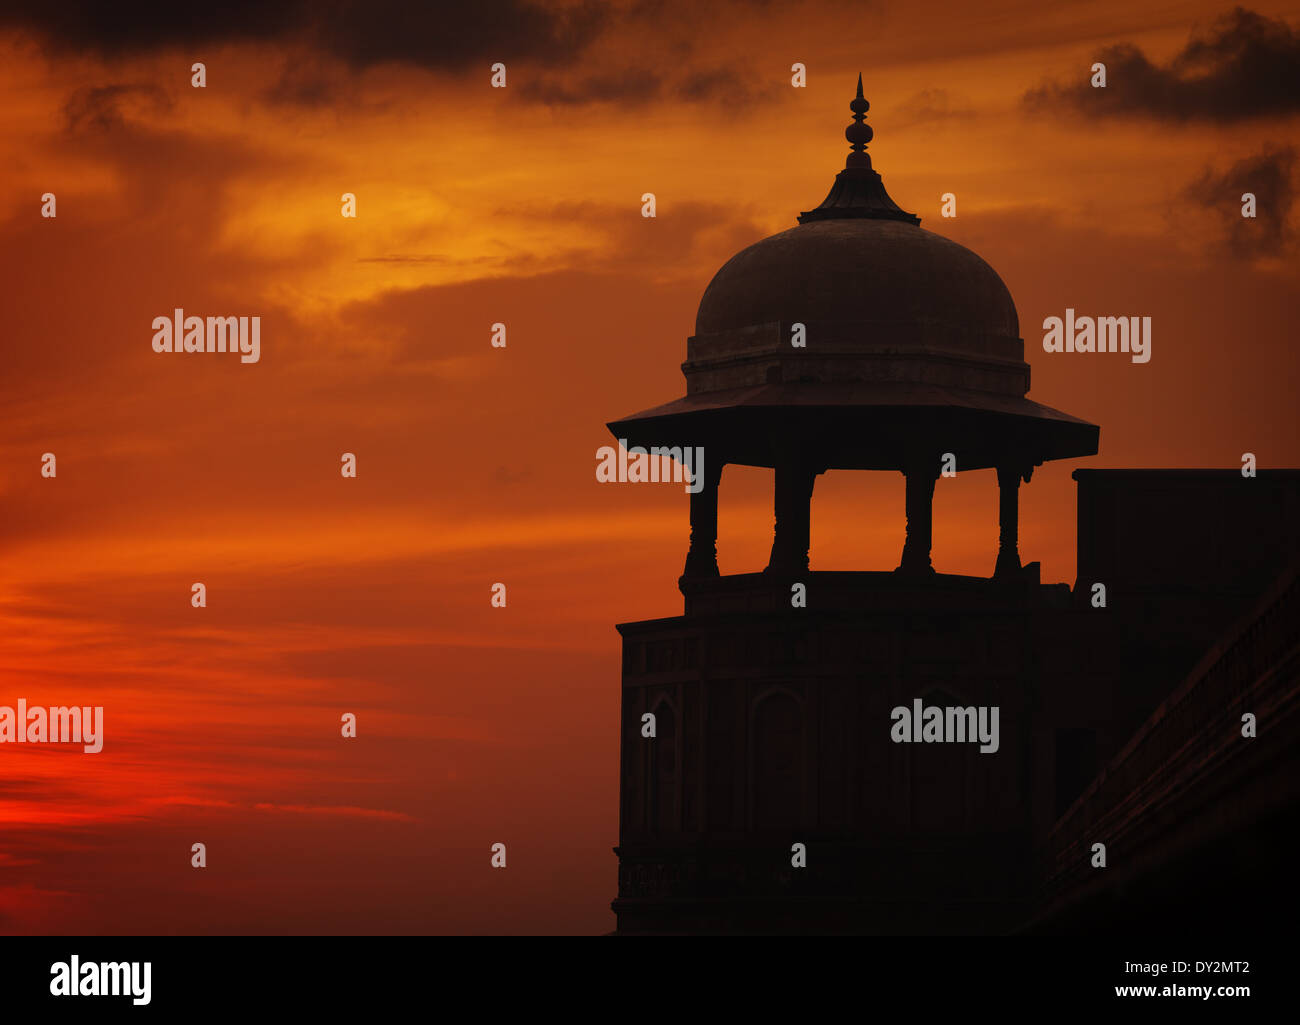 Silhouette of Asian style tower on sunset sky background, Red ford, Agra, India - Stock Image